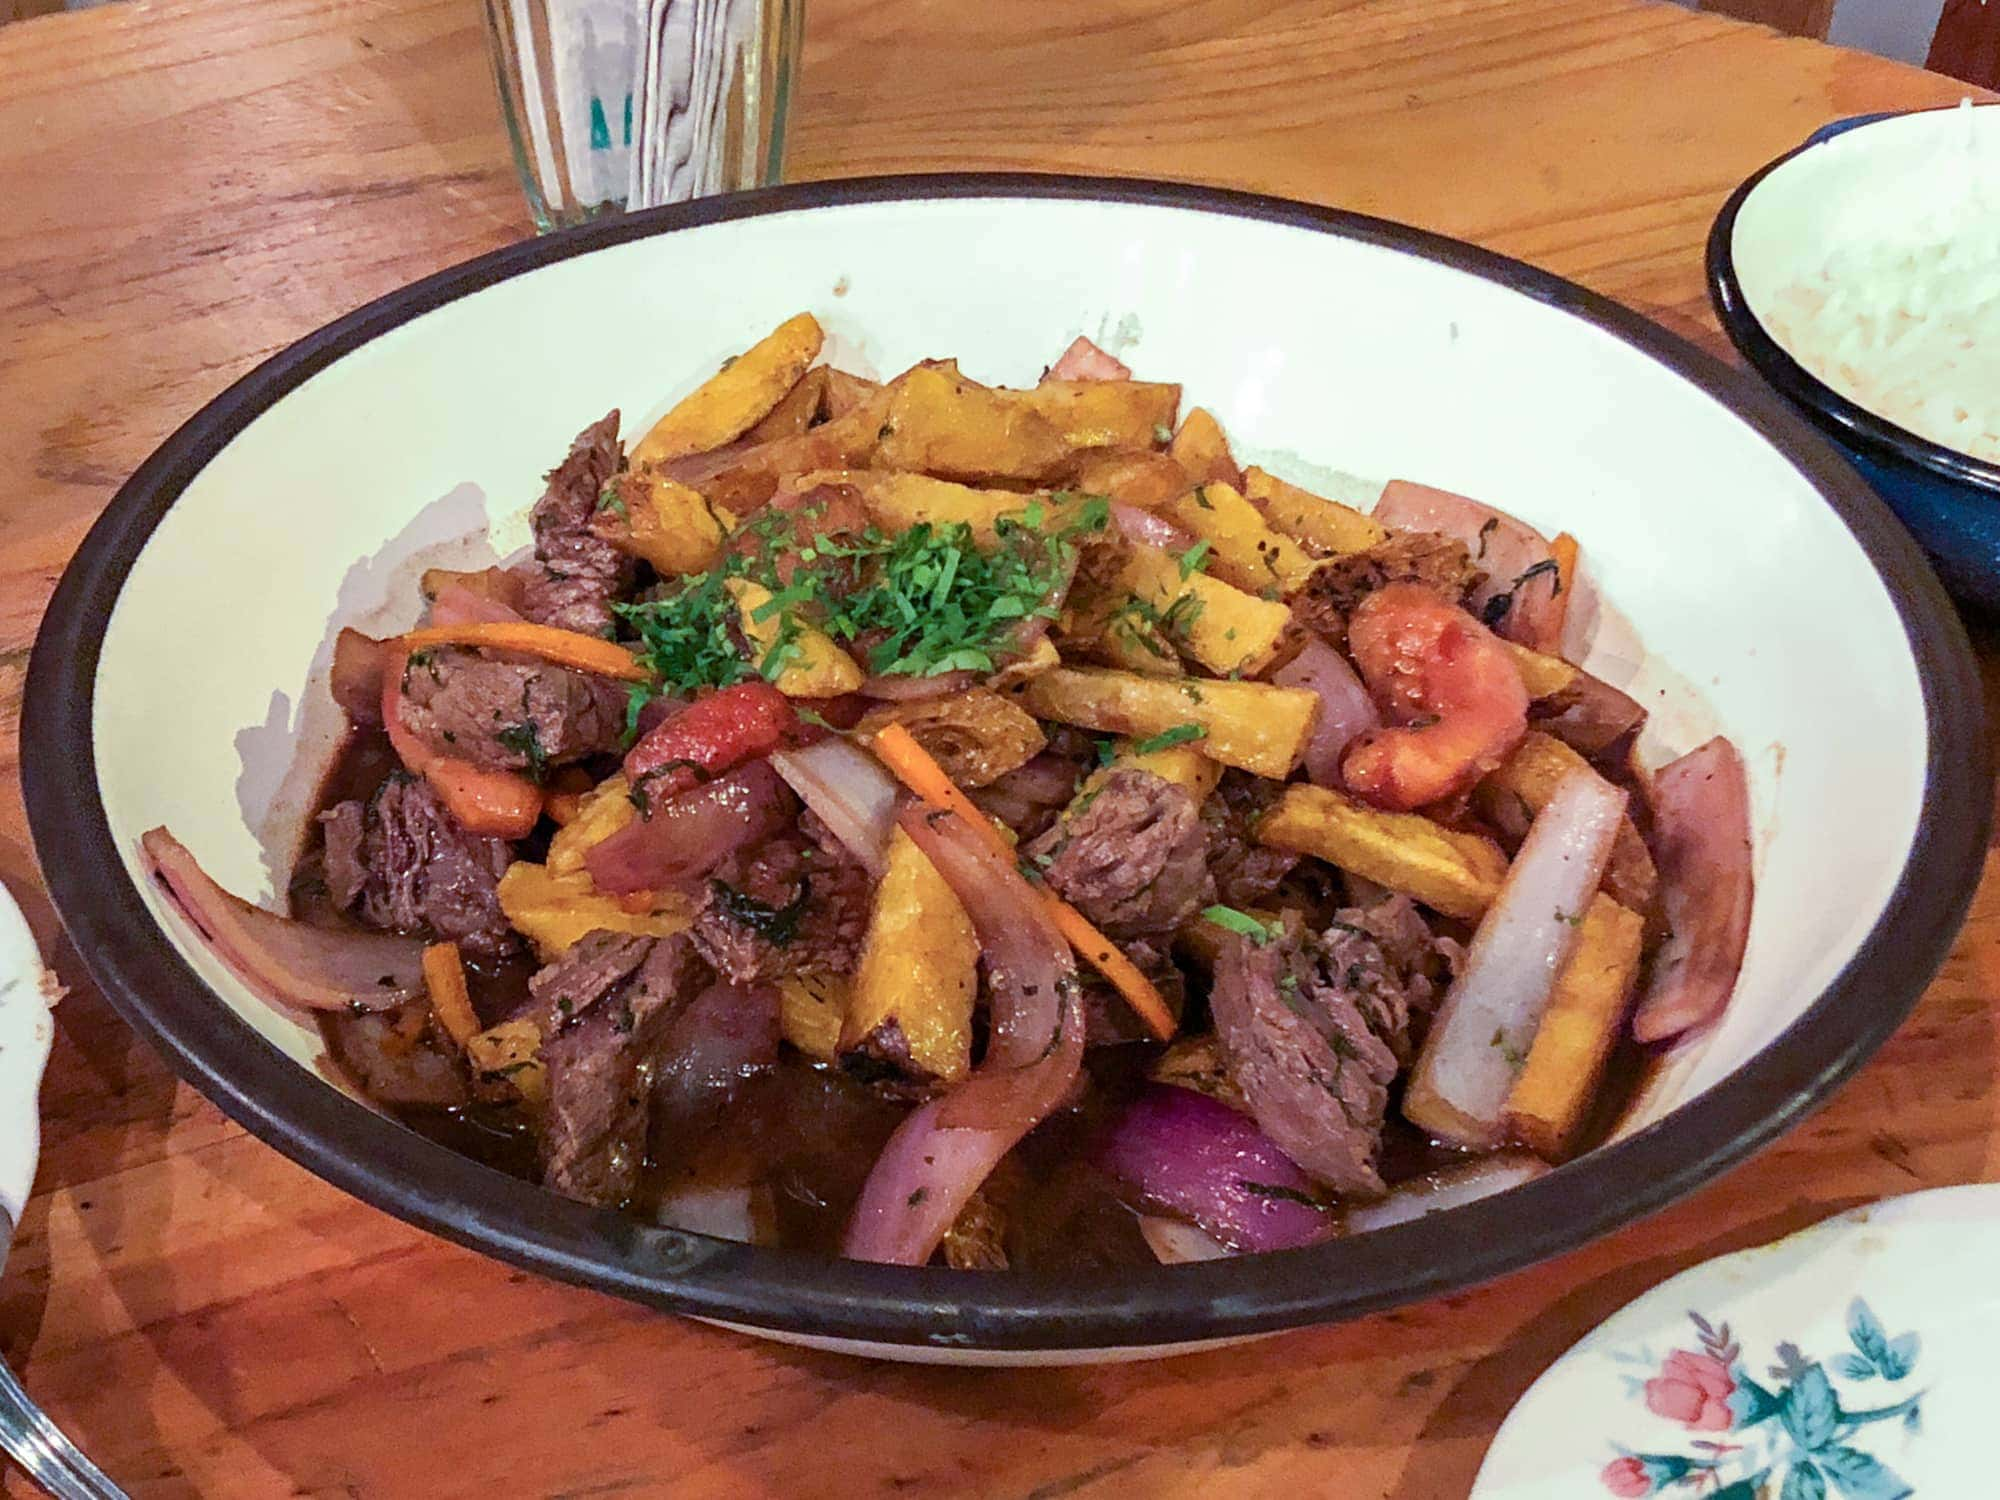 Lomo saltado at Isolina